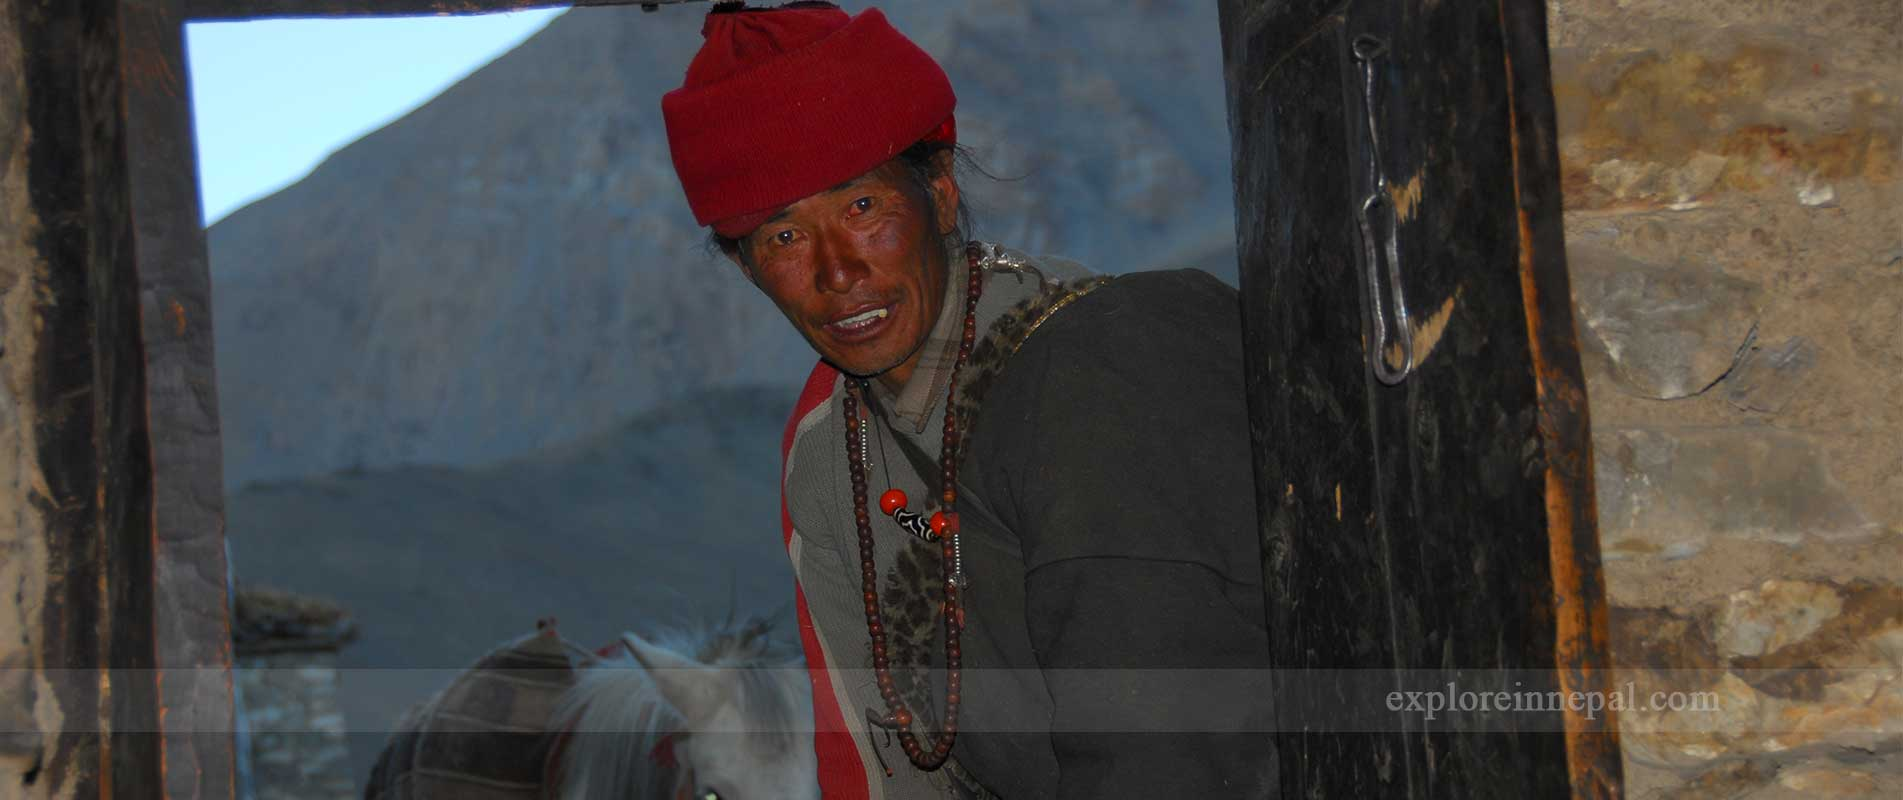 Old sherpa people in Dolpa